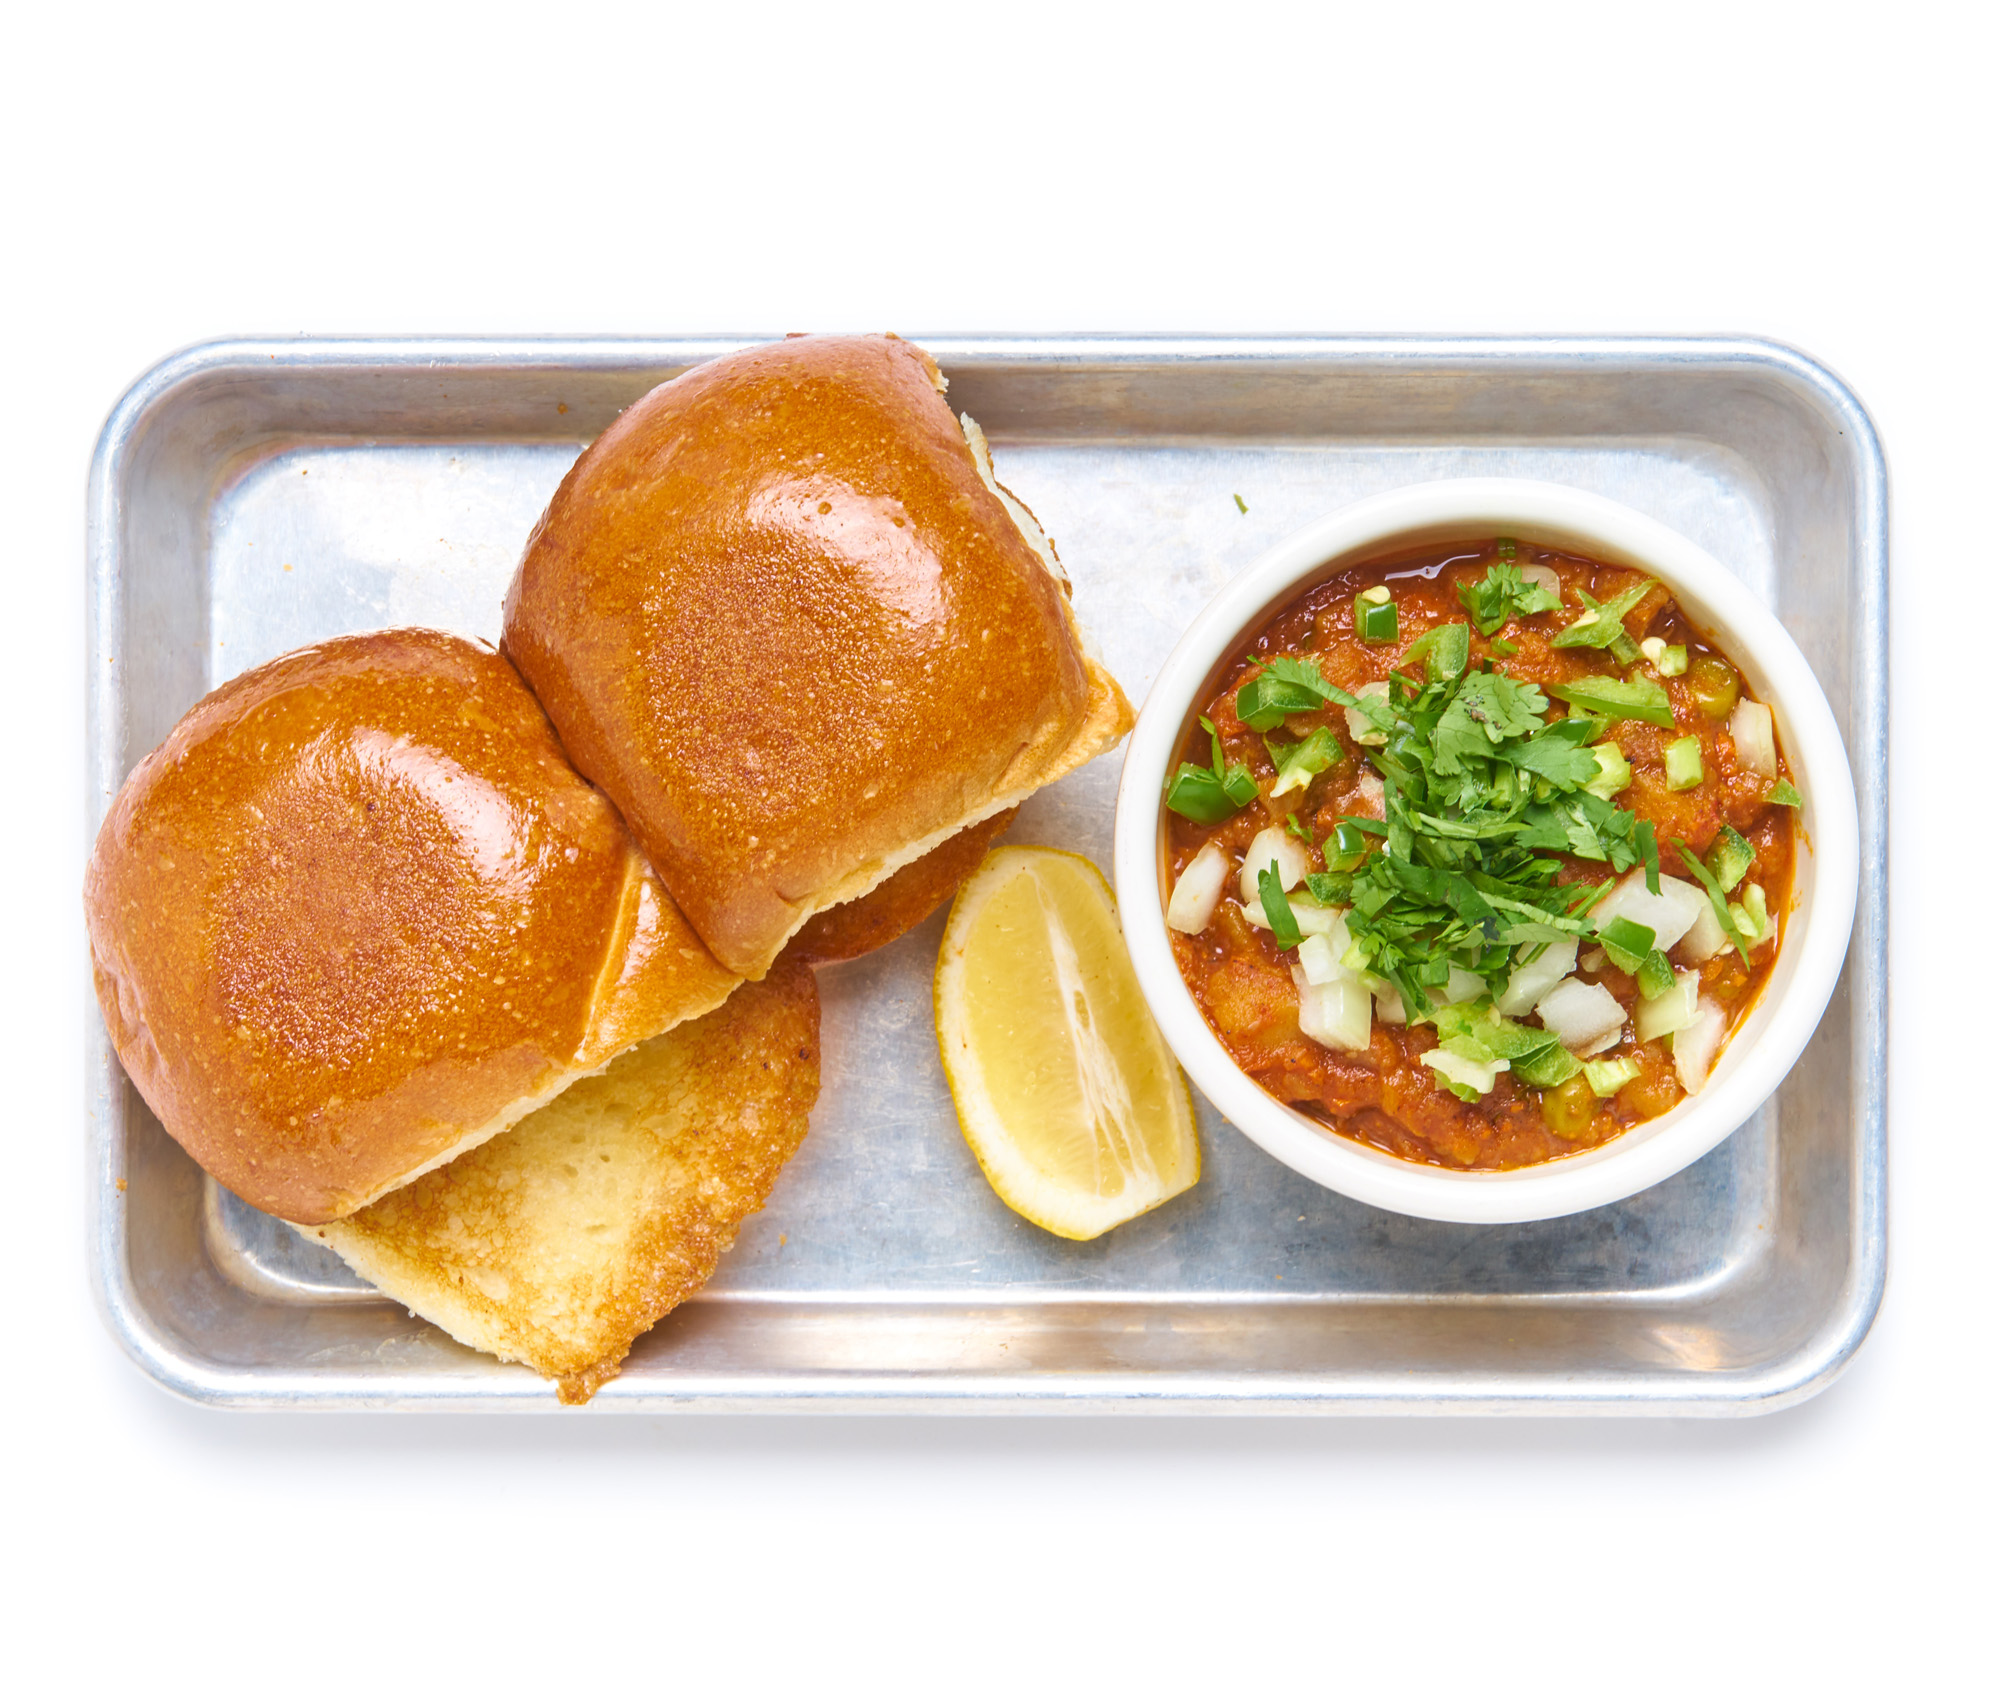 PAV BHAJI   a mumbai street bhaji mash of seasonal veggies with amul buttered pav bread (VG)